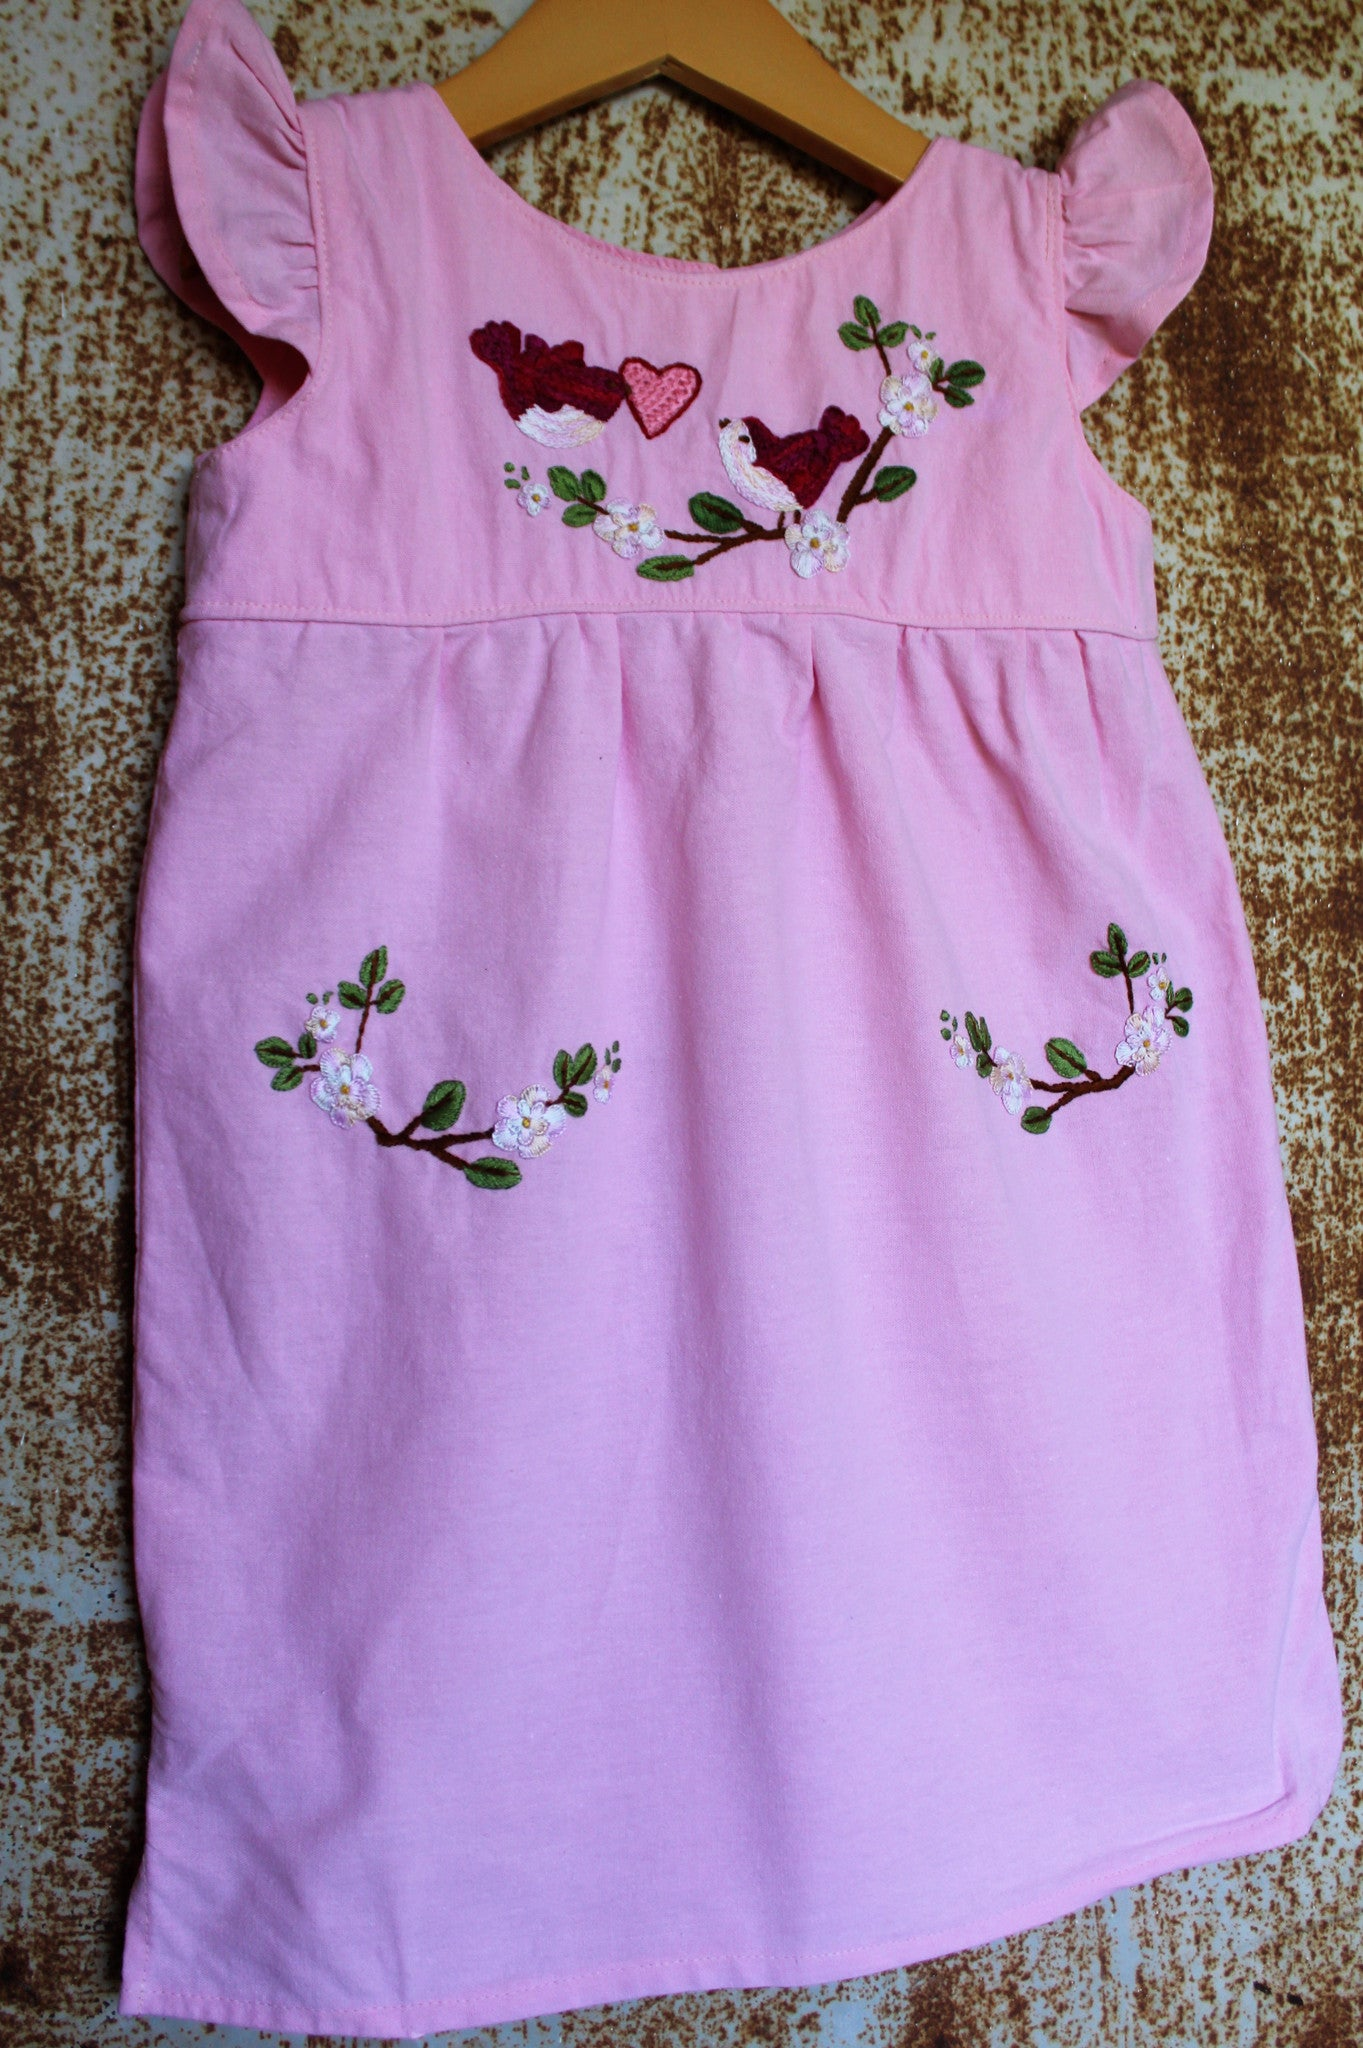 Valentine's Day Dress - Birdies & Heart Detail - Hand Dyed Pink Cotton -